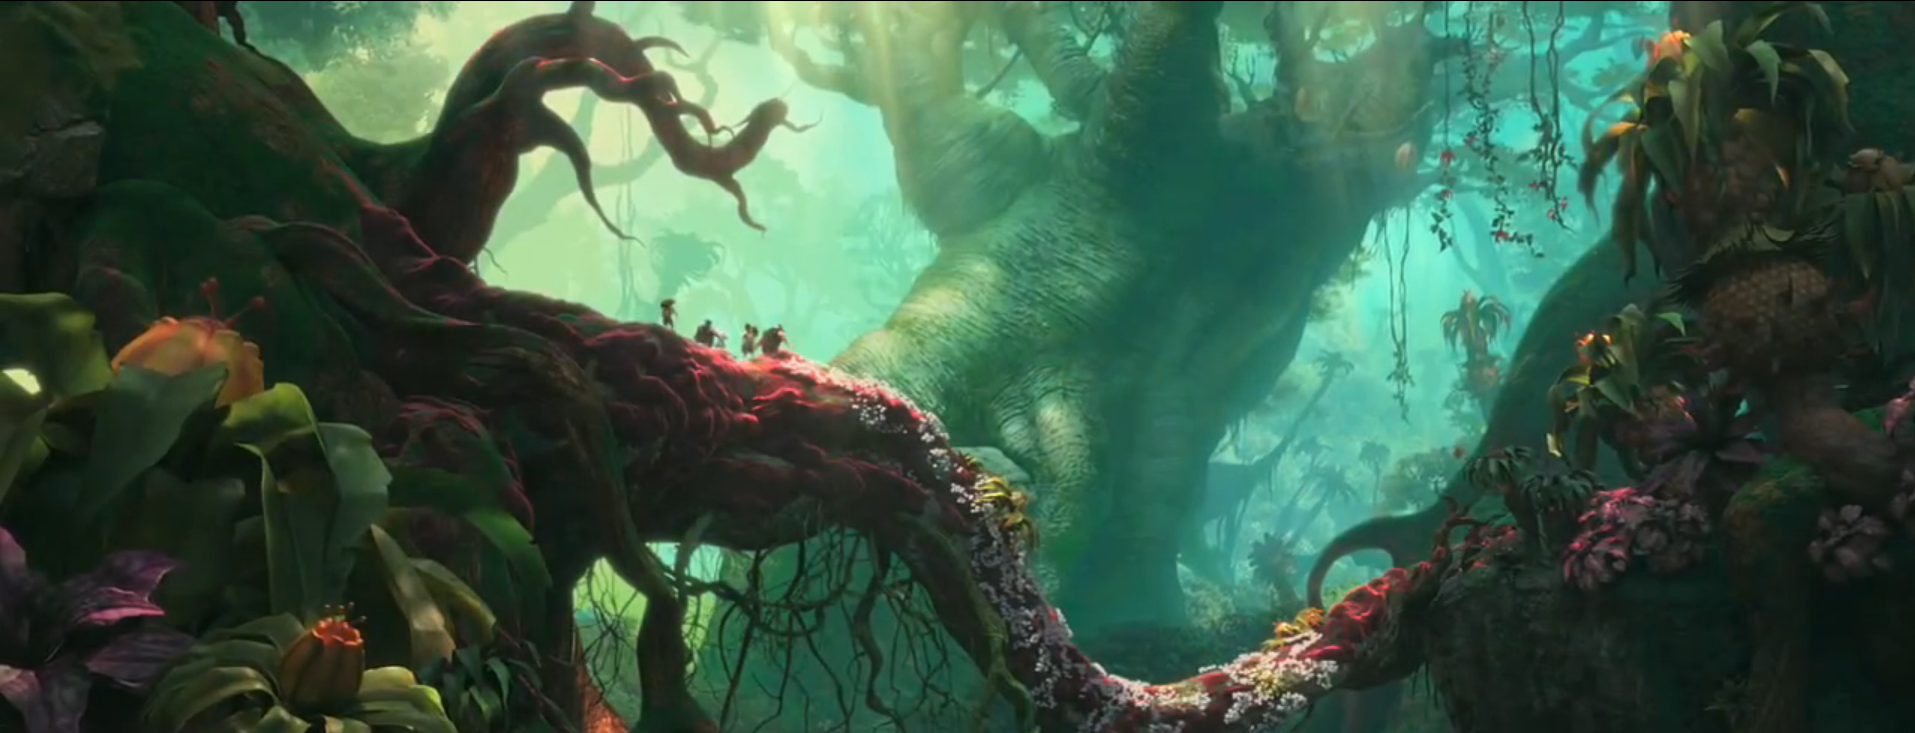 croods-jungle.png